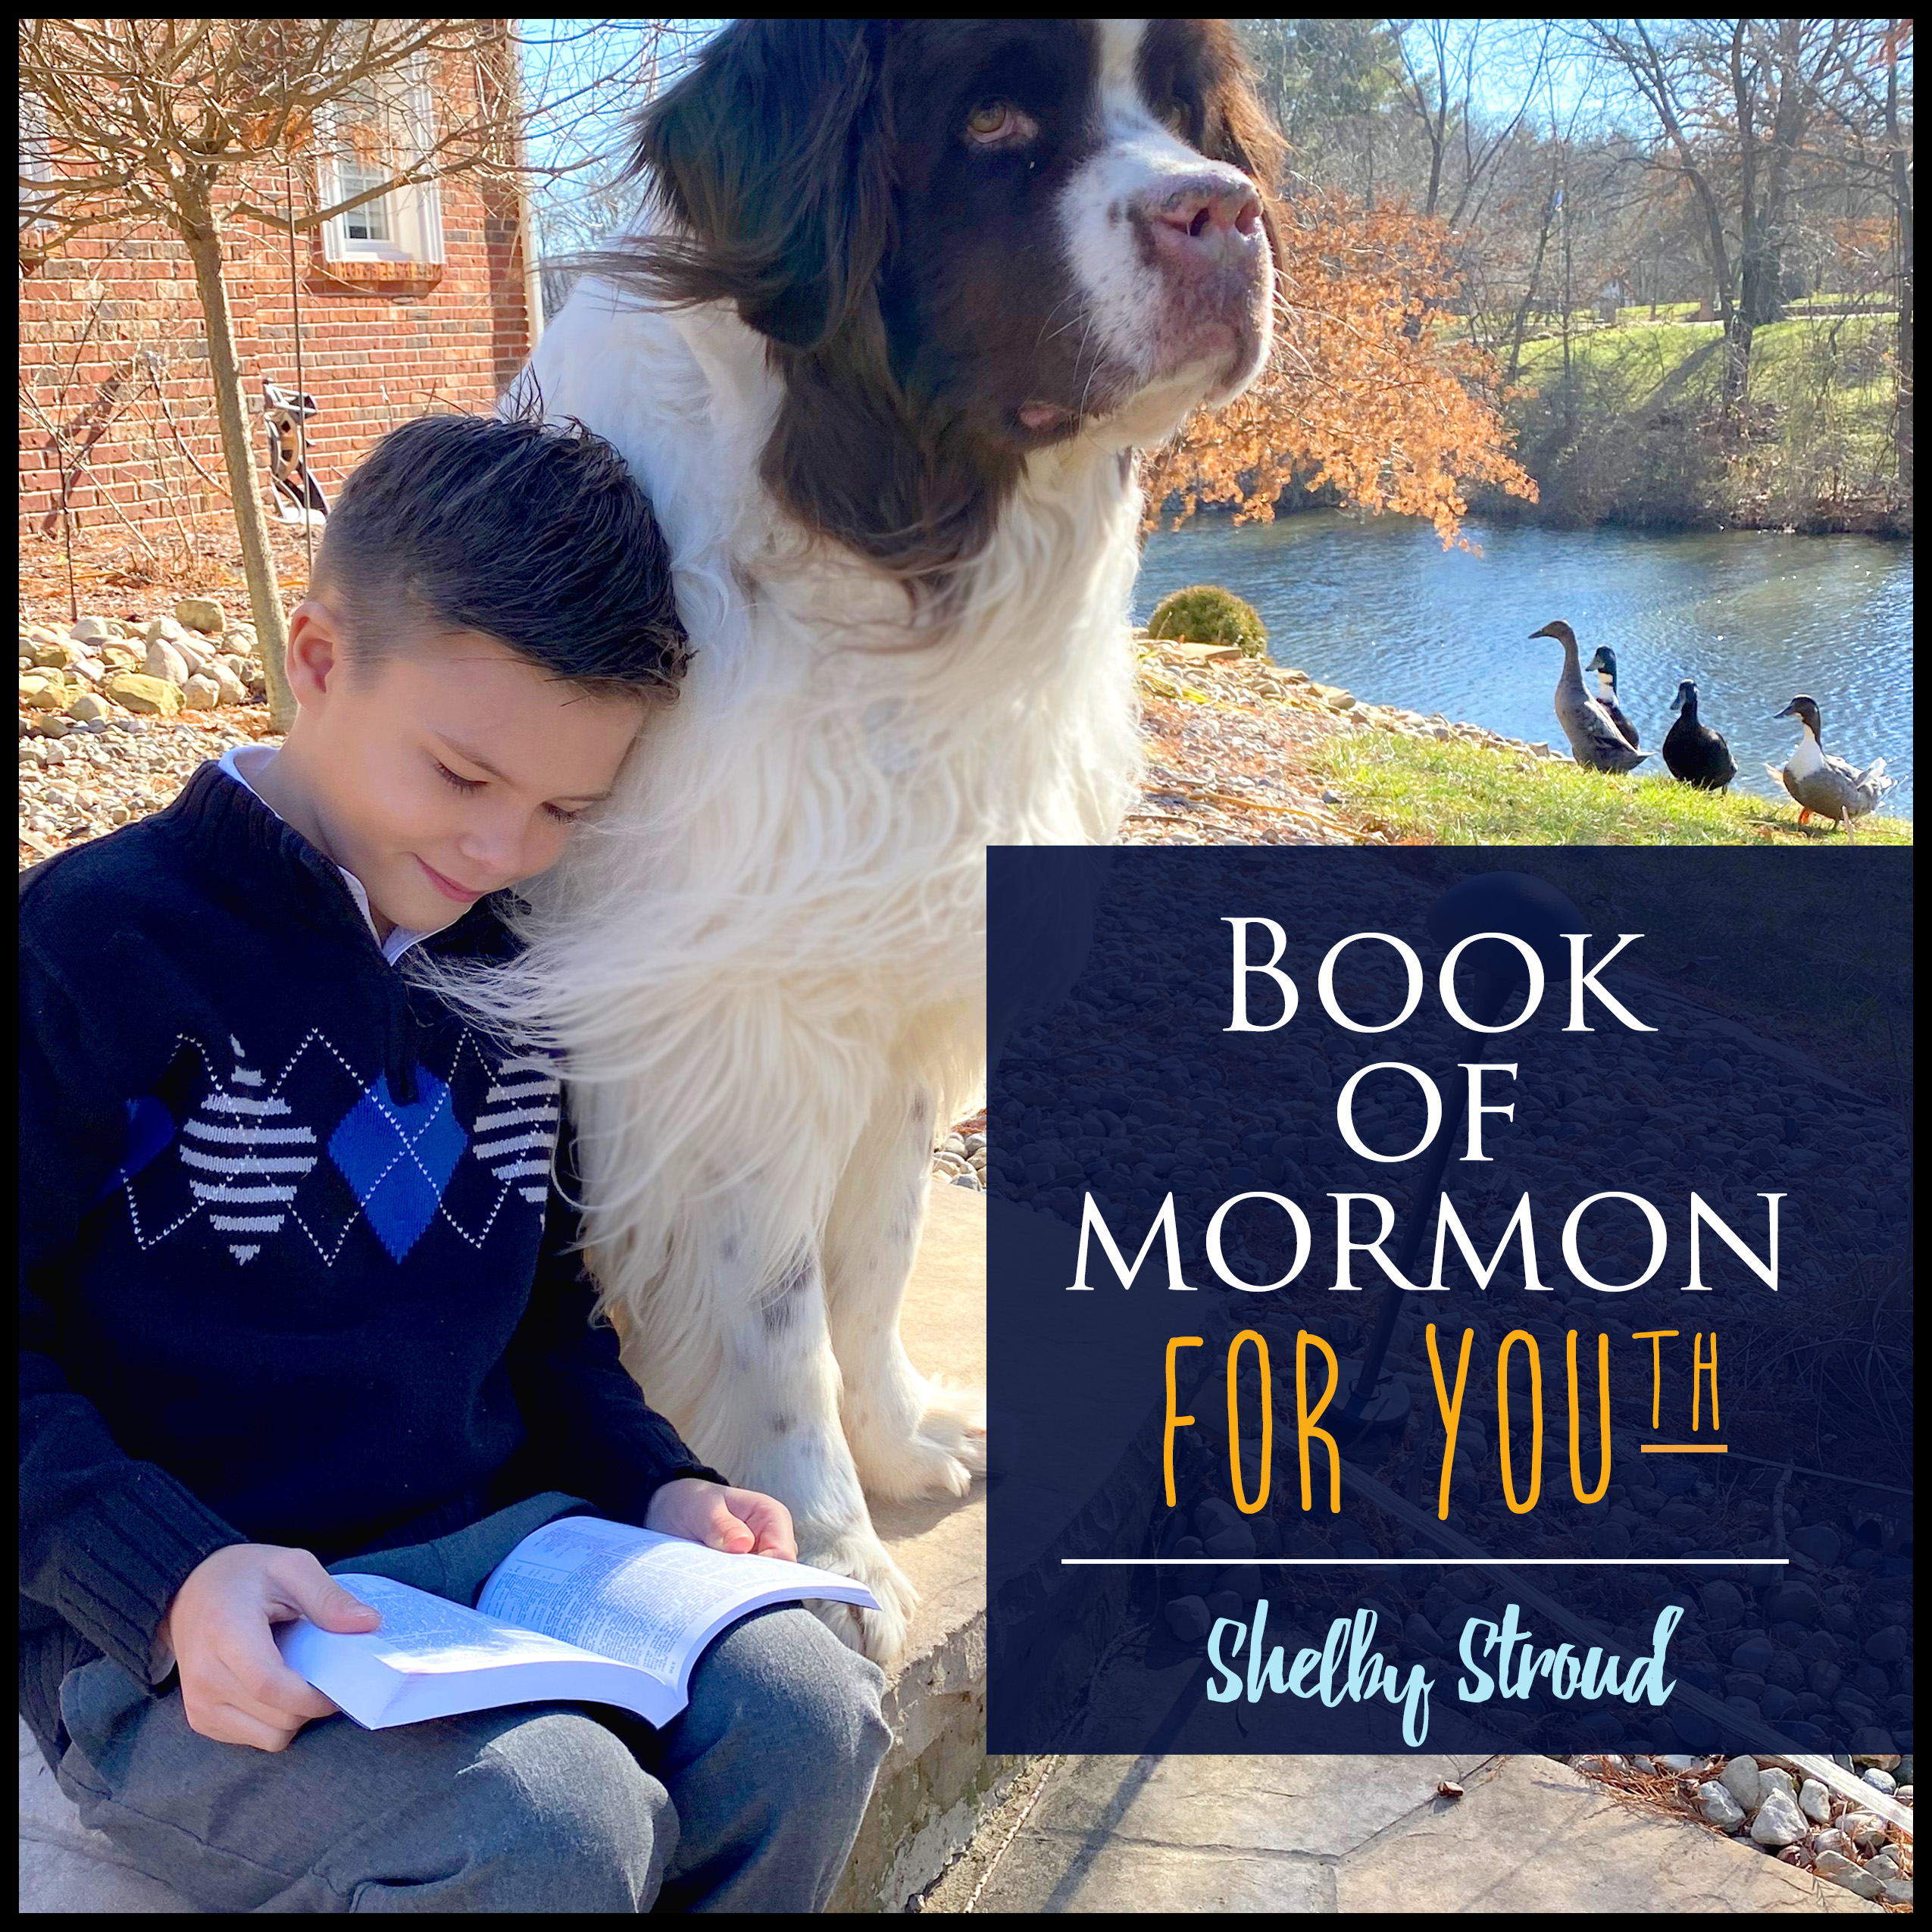 Book of Mormon for YOUth